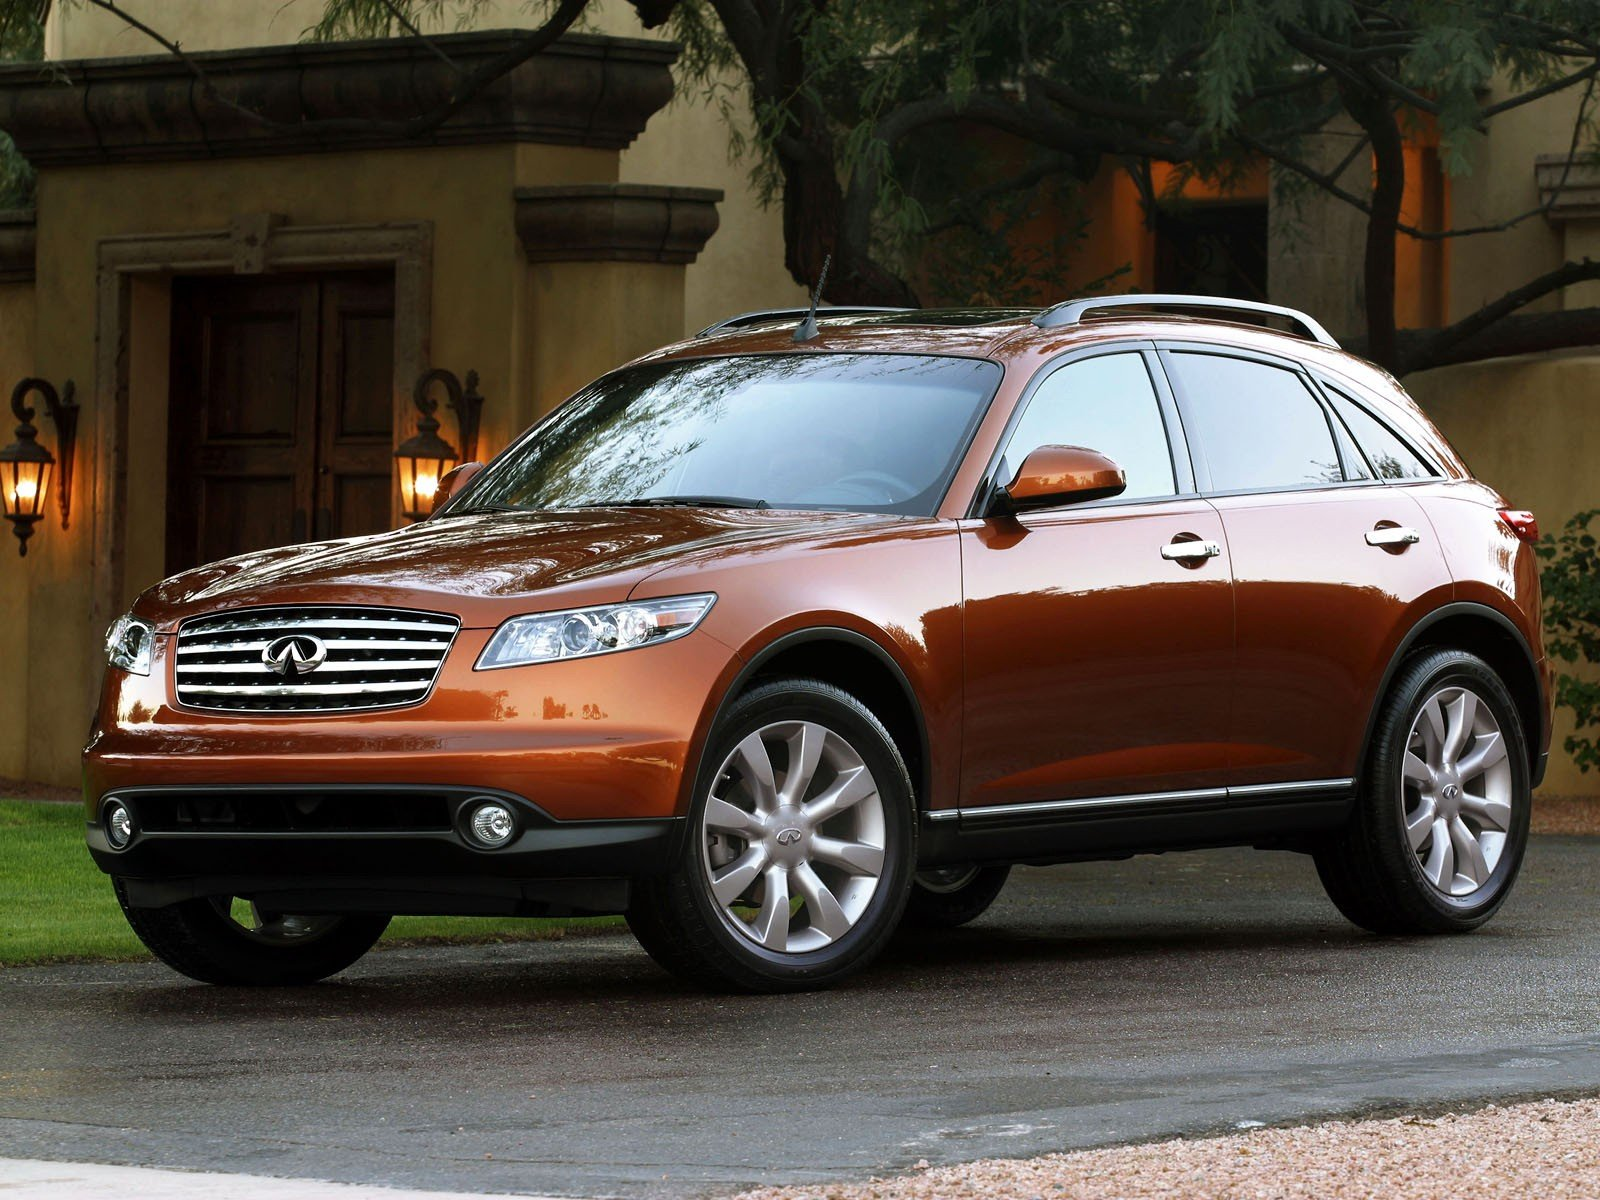 Nhtsa Investigating Infiniti Qx4 Nissan Pathfinder Over Corrosi as well File 1997 2000 Infiniti QX4 as well Qx likewise Infiniti Fx45 Nav And Dvd besides 2000 2001 Toyota Reduction 1125000. on infinity qx45